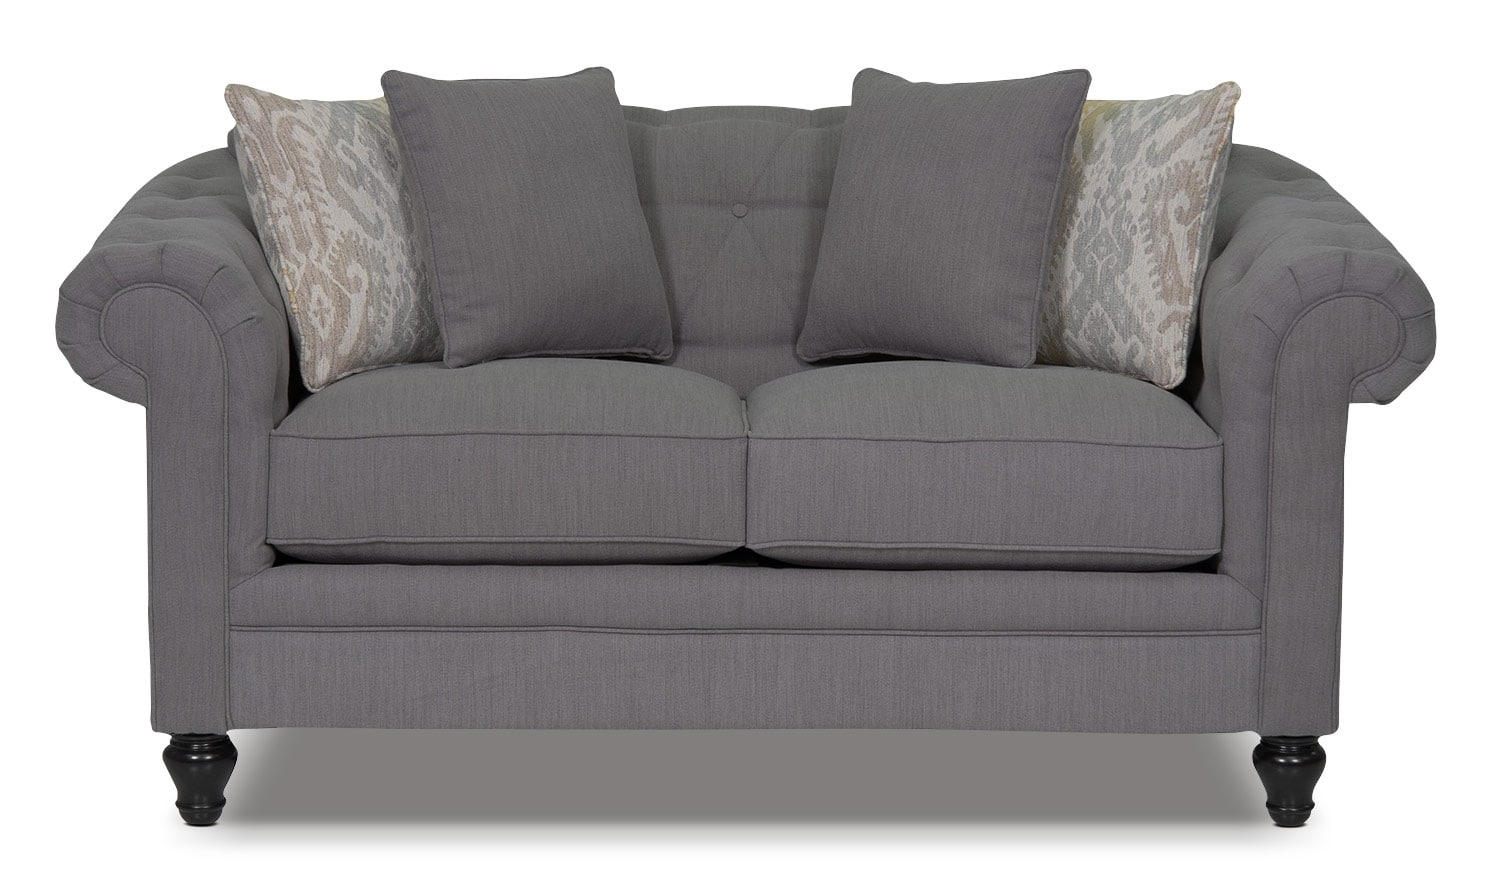 Living Room Furniture - Julia Chenille Loveseat - Grey